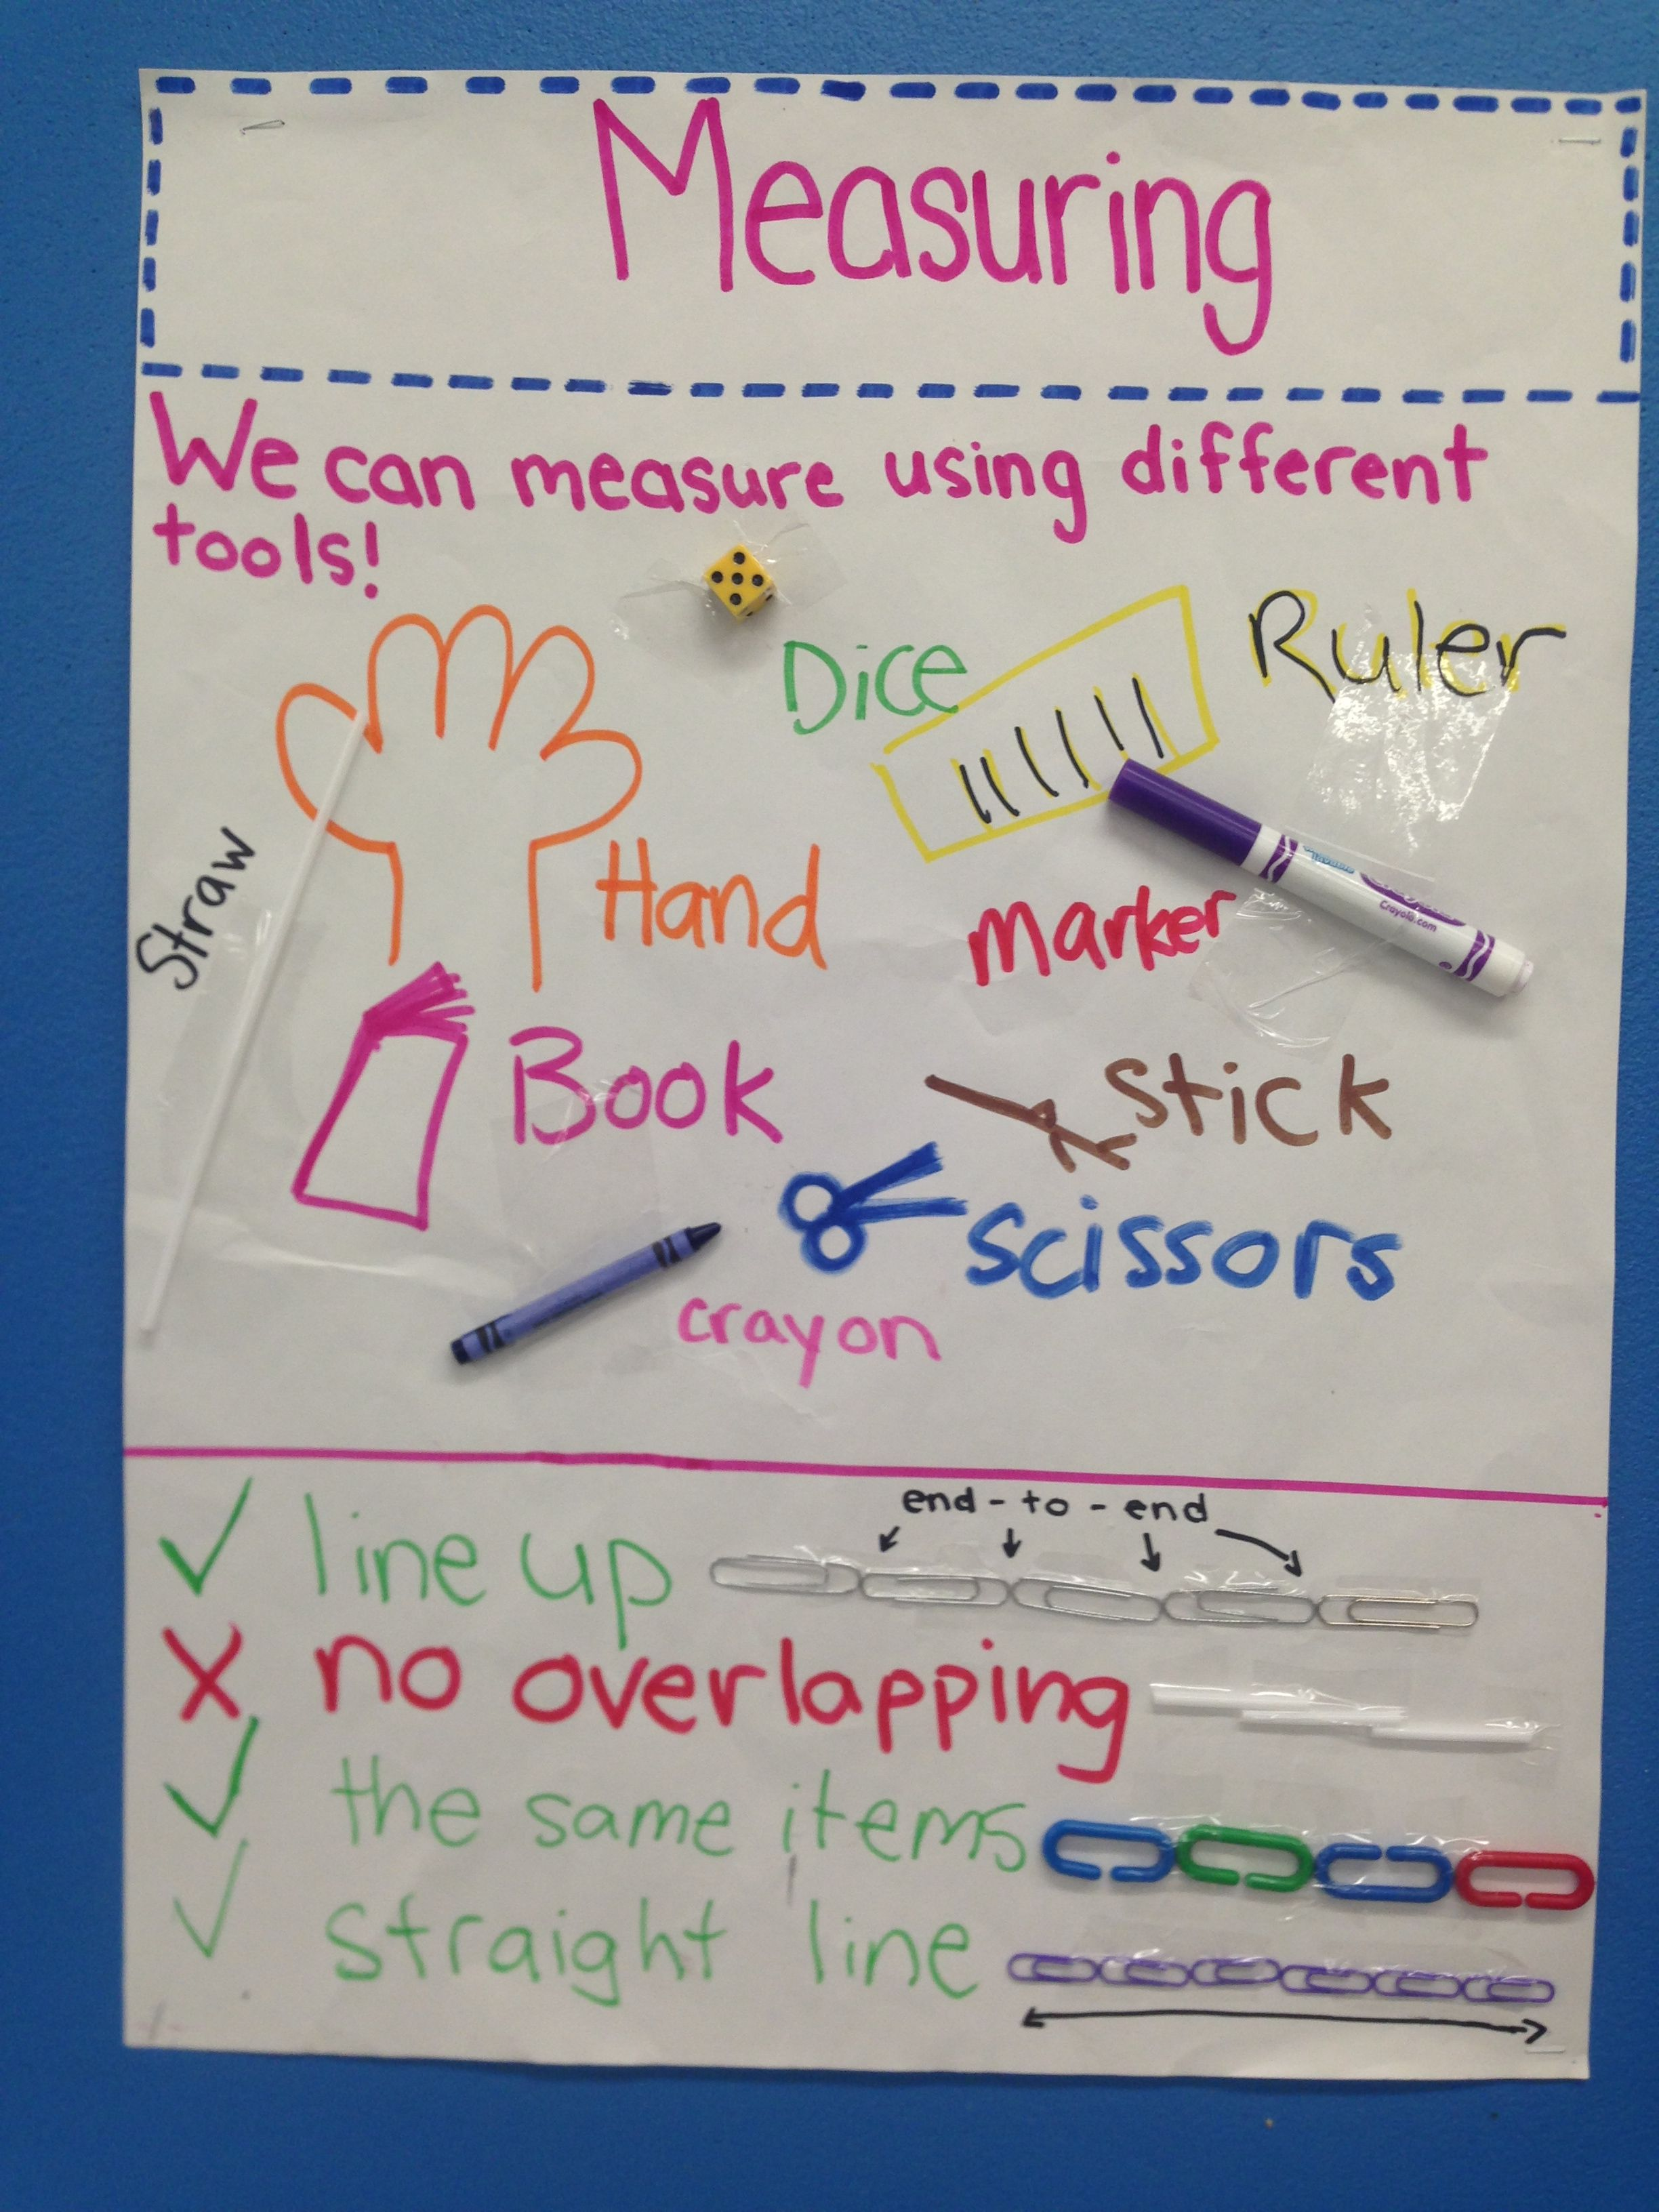 A Co Created Measuring Tool Anchor Chart With Measuring